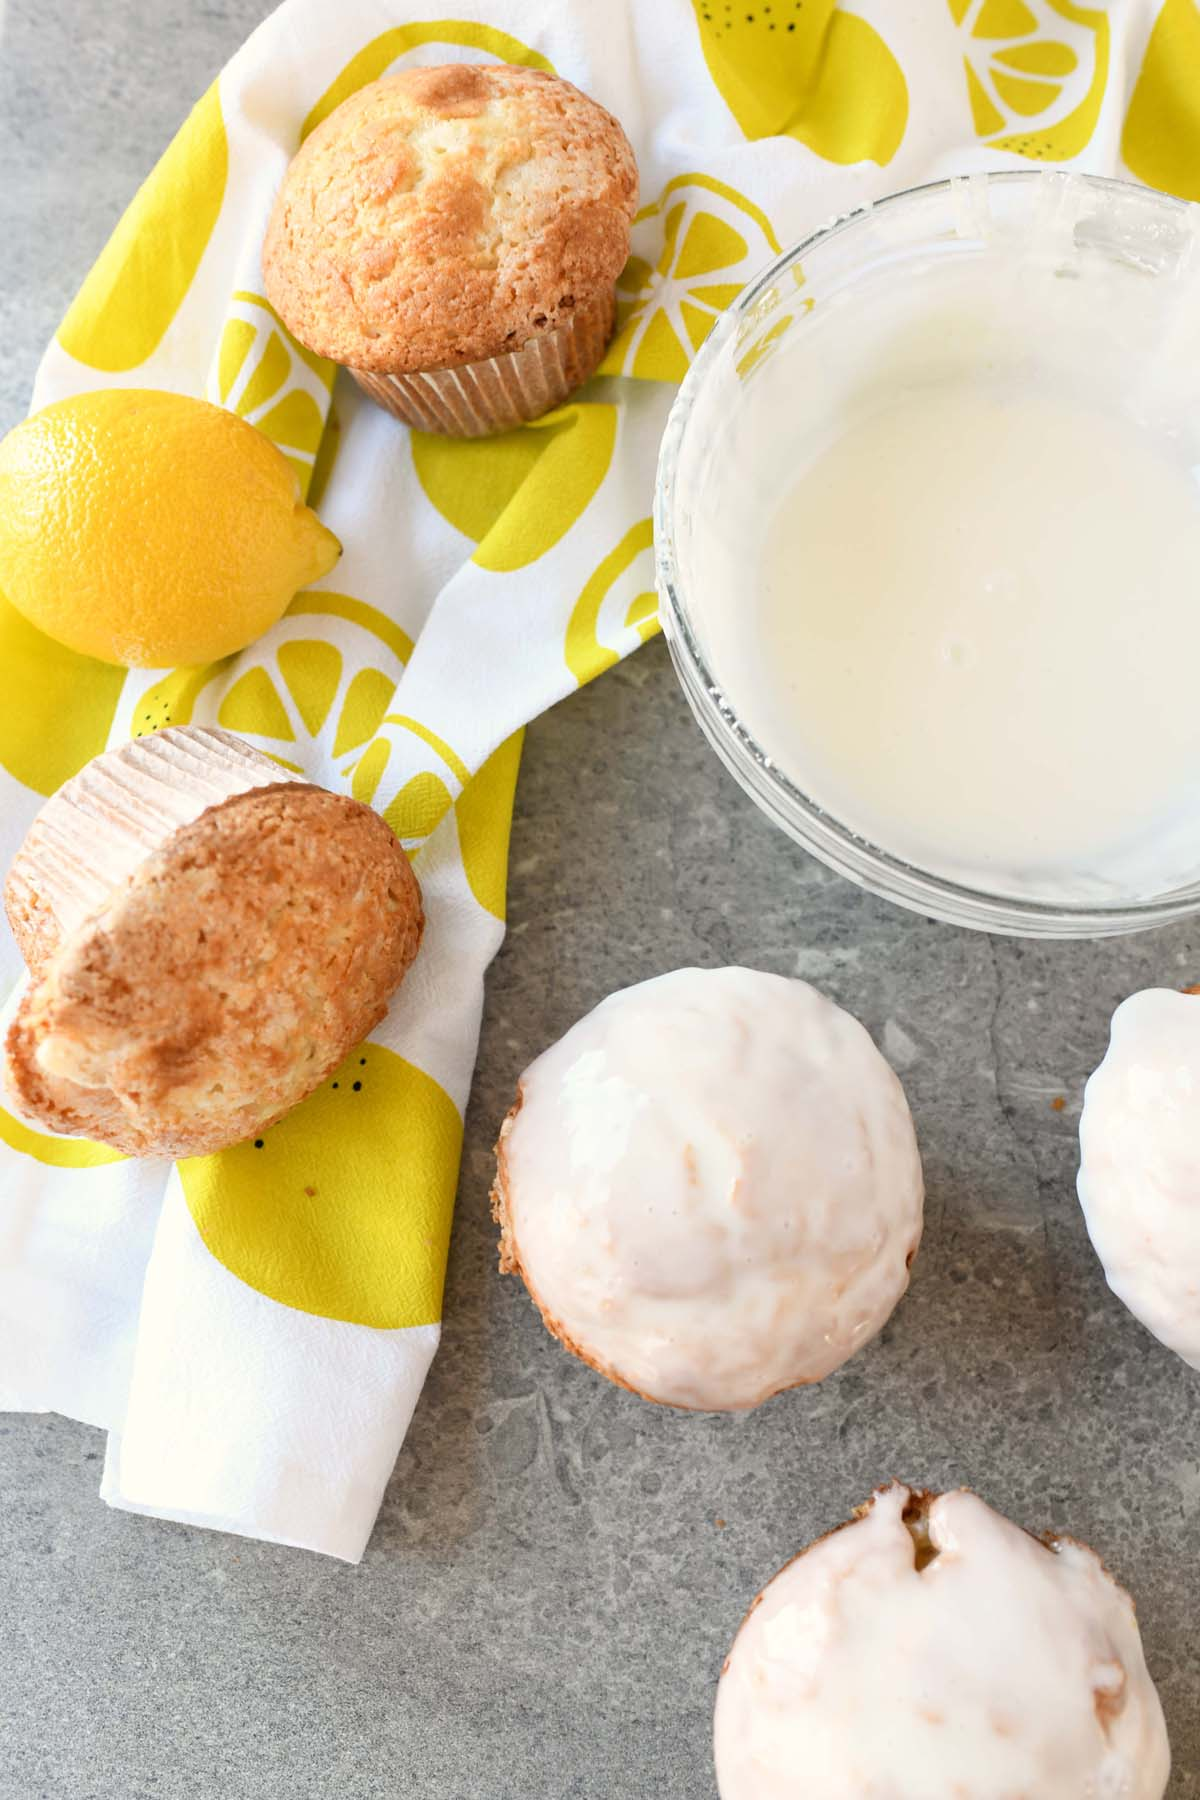 Iced and plain Lemon Jumbo Muffins on a grey table. There is a lemon napkin and a bowl of icing in the shot.